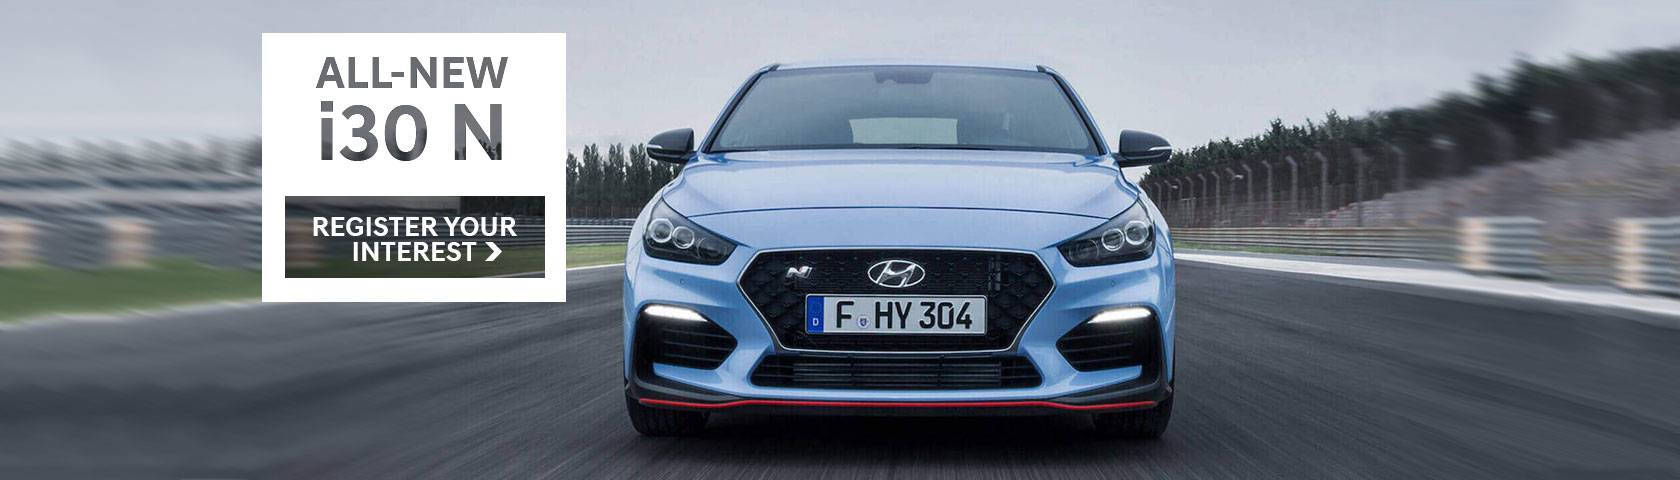 Hyundai i30 N Coming Soon